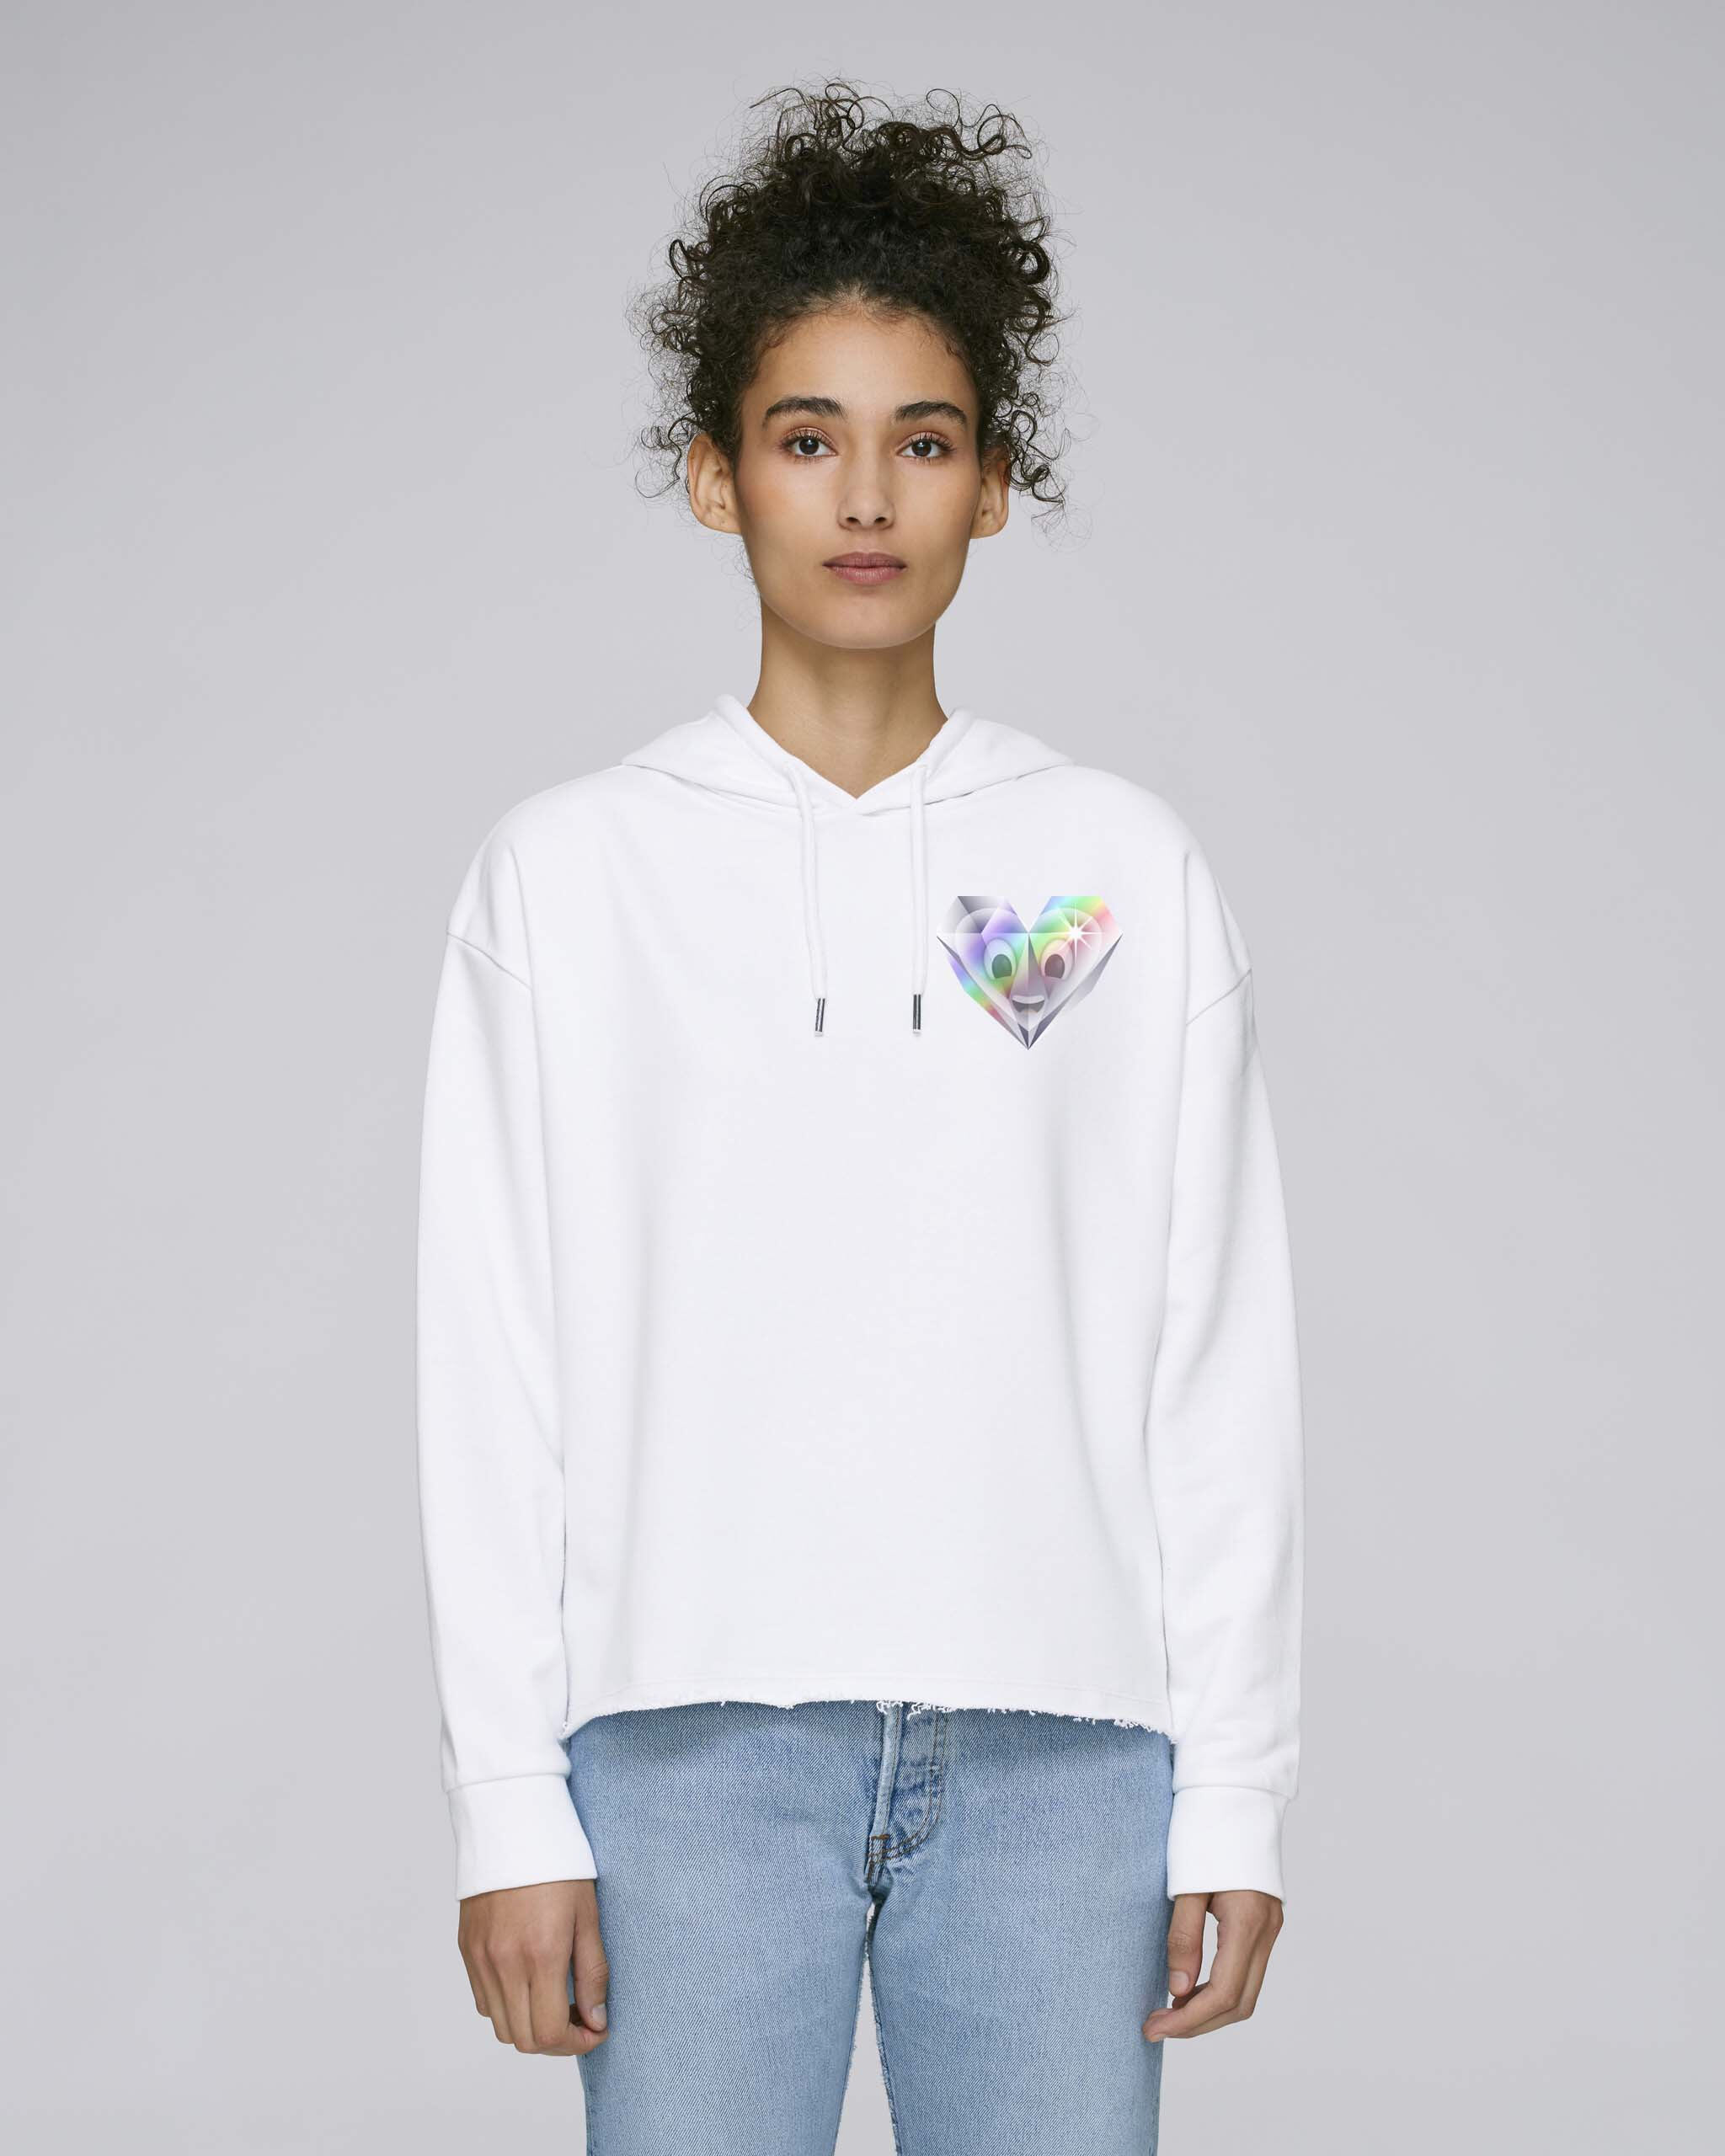 Sweat-Shirt Bio blanc Femme - Diamond sweat